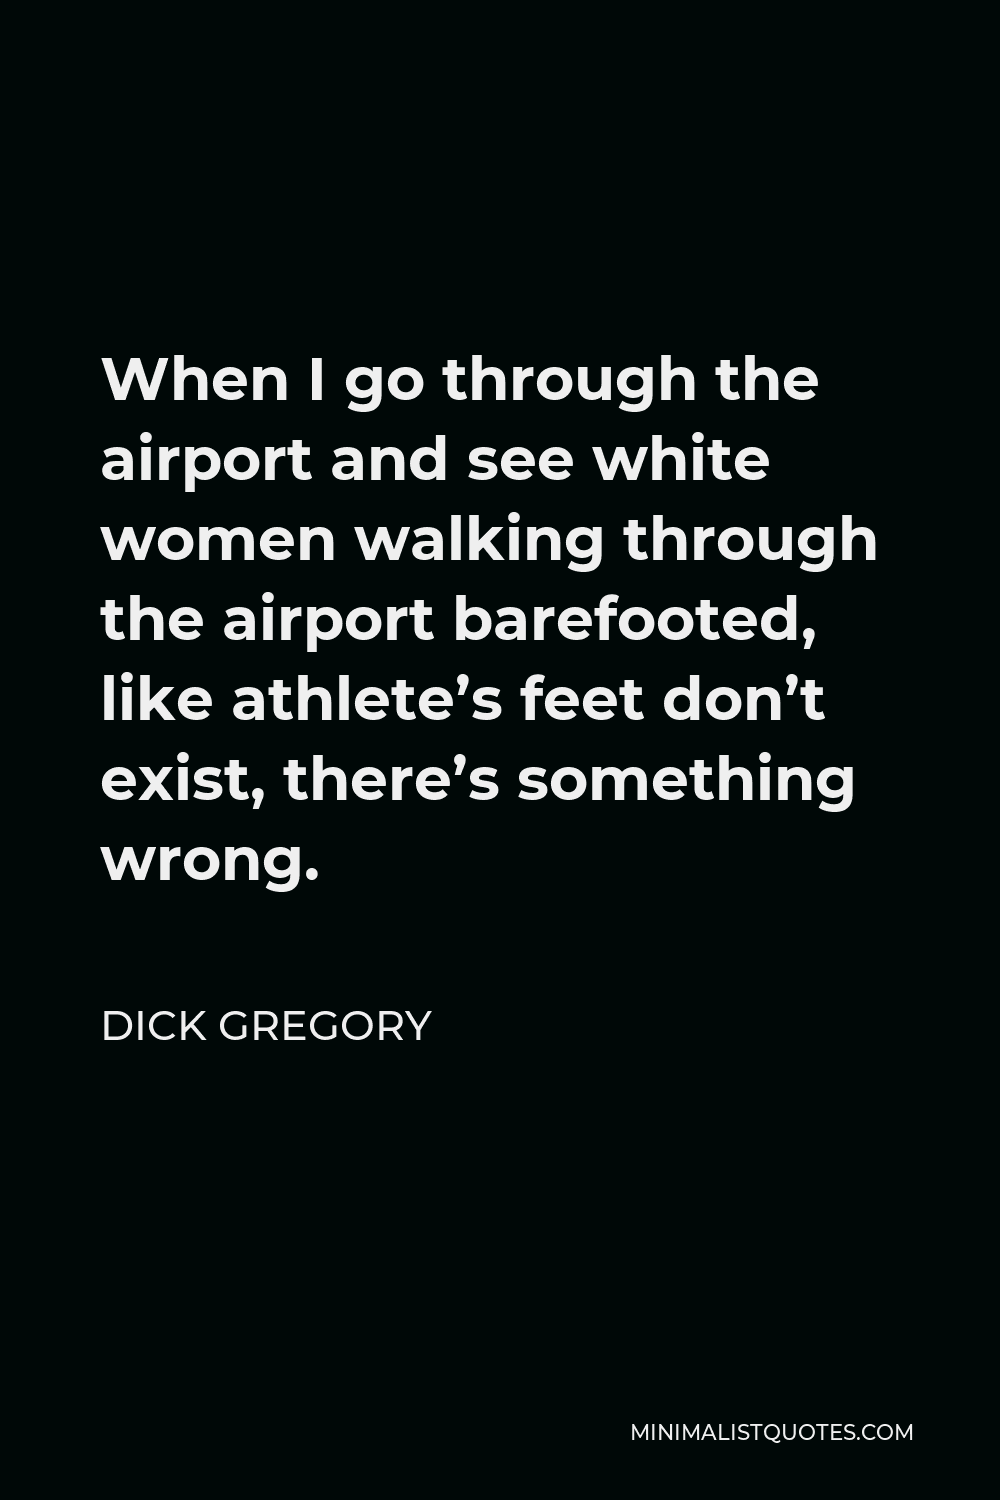 Dick Gregory Quote - When I go through the airport and see white women walking through the airport barefooted, like athlete's feet don't exist, there's something wrong.